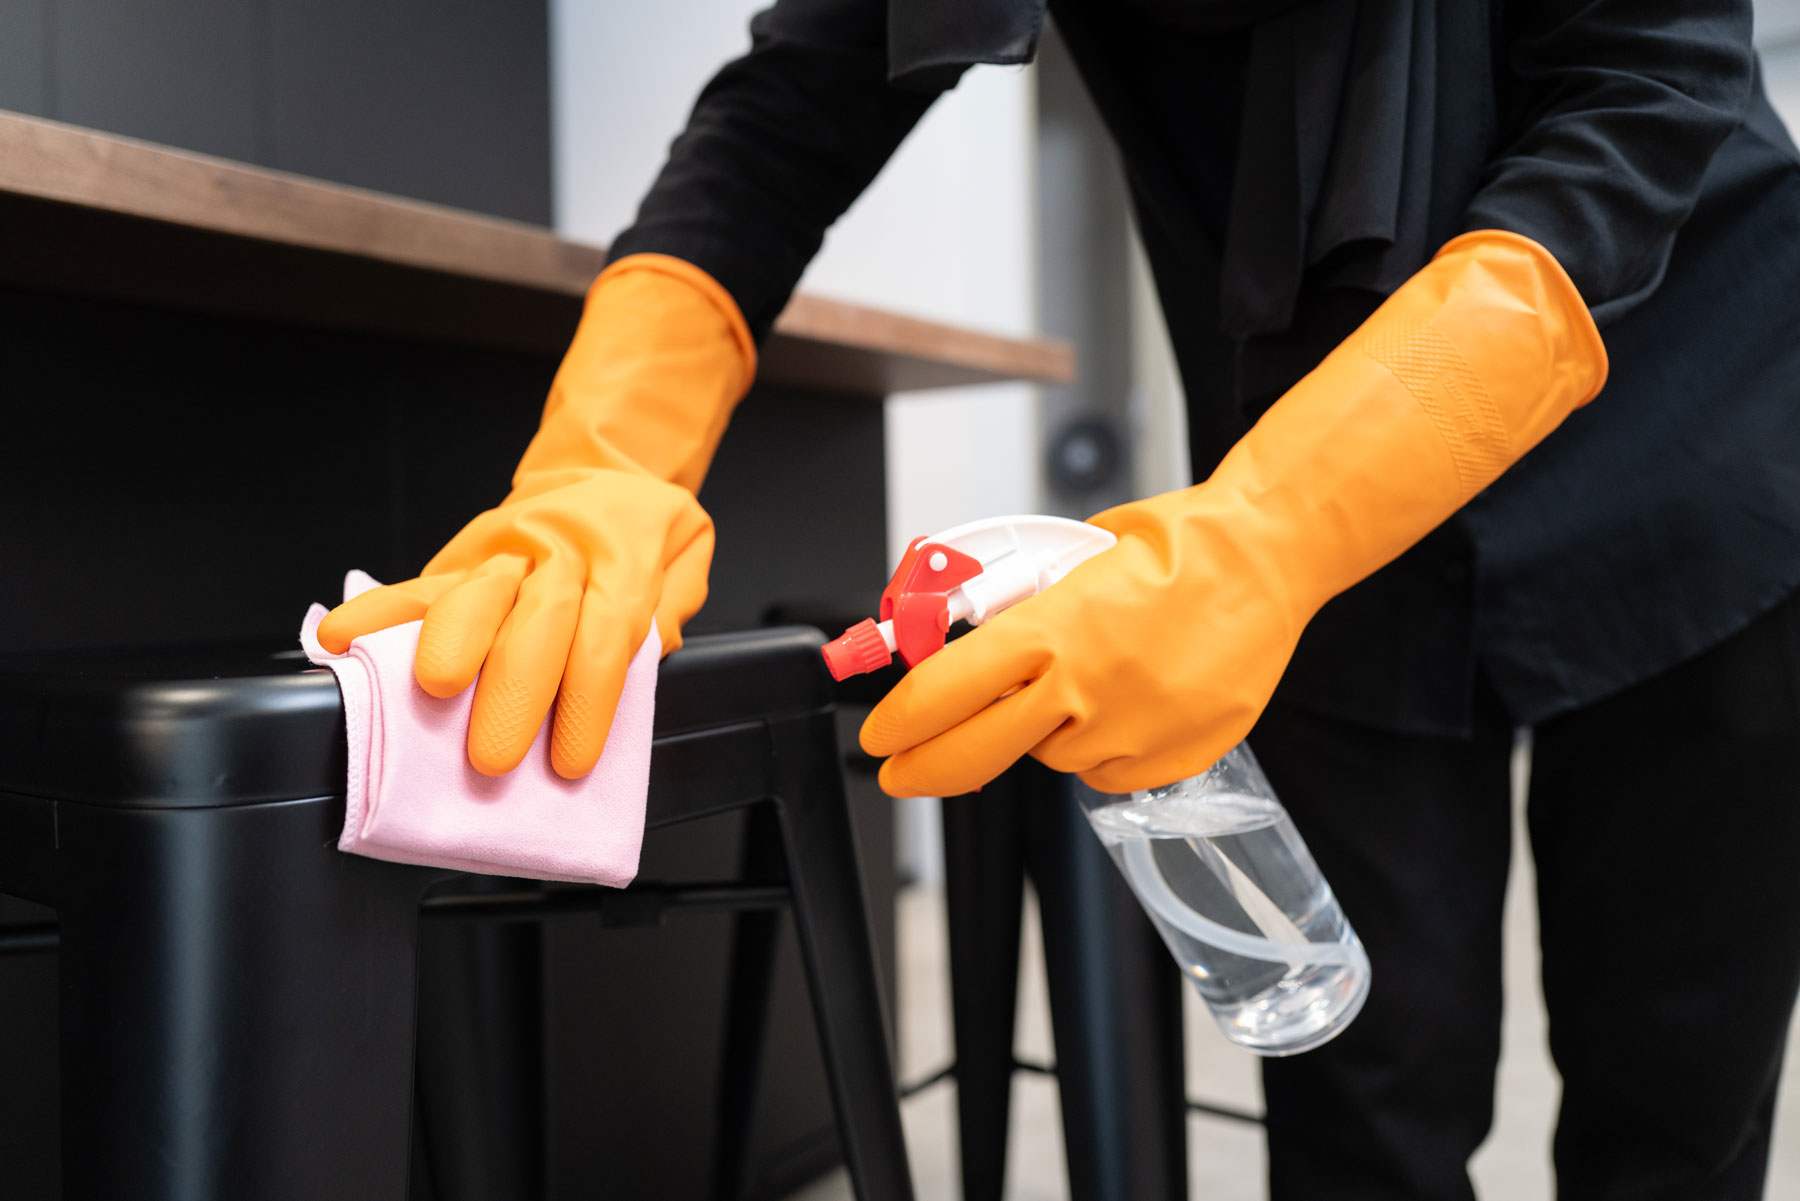 Person cleaning stool wearing gloves